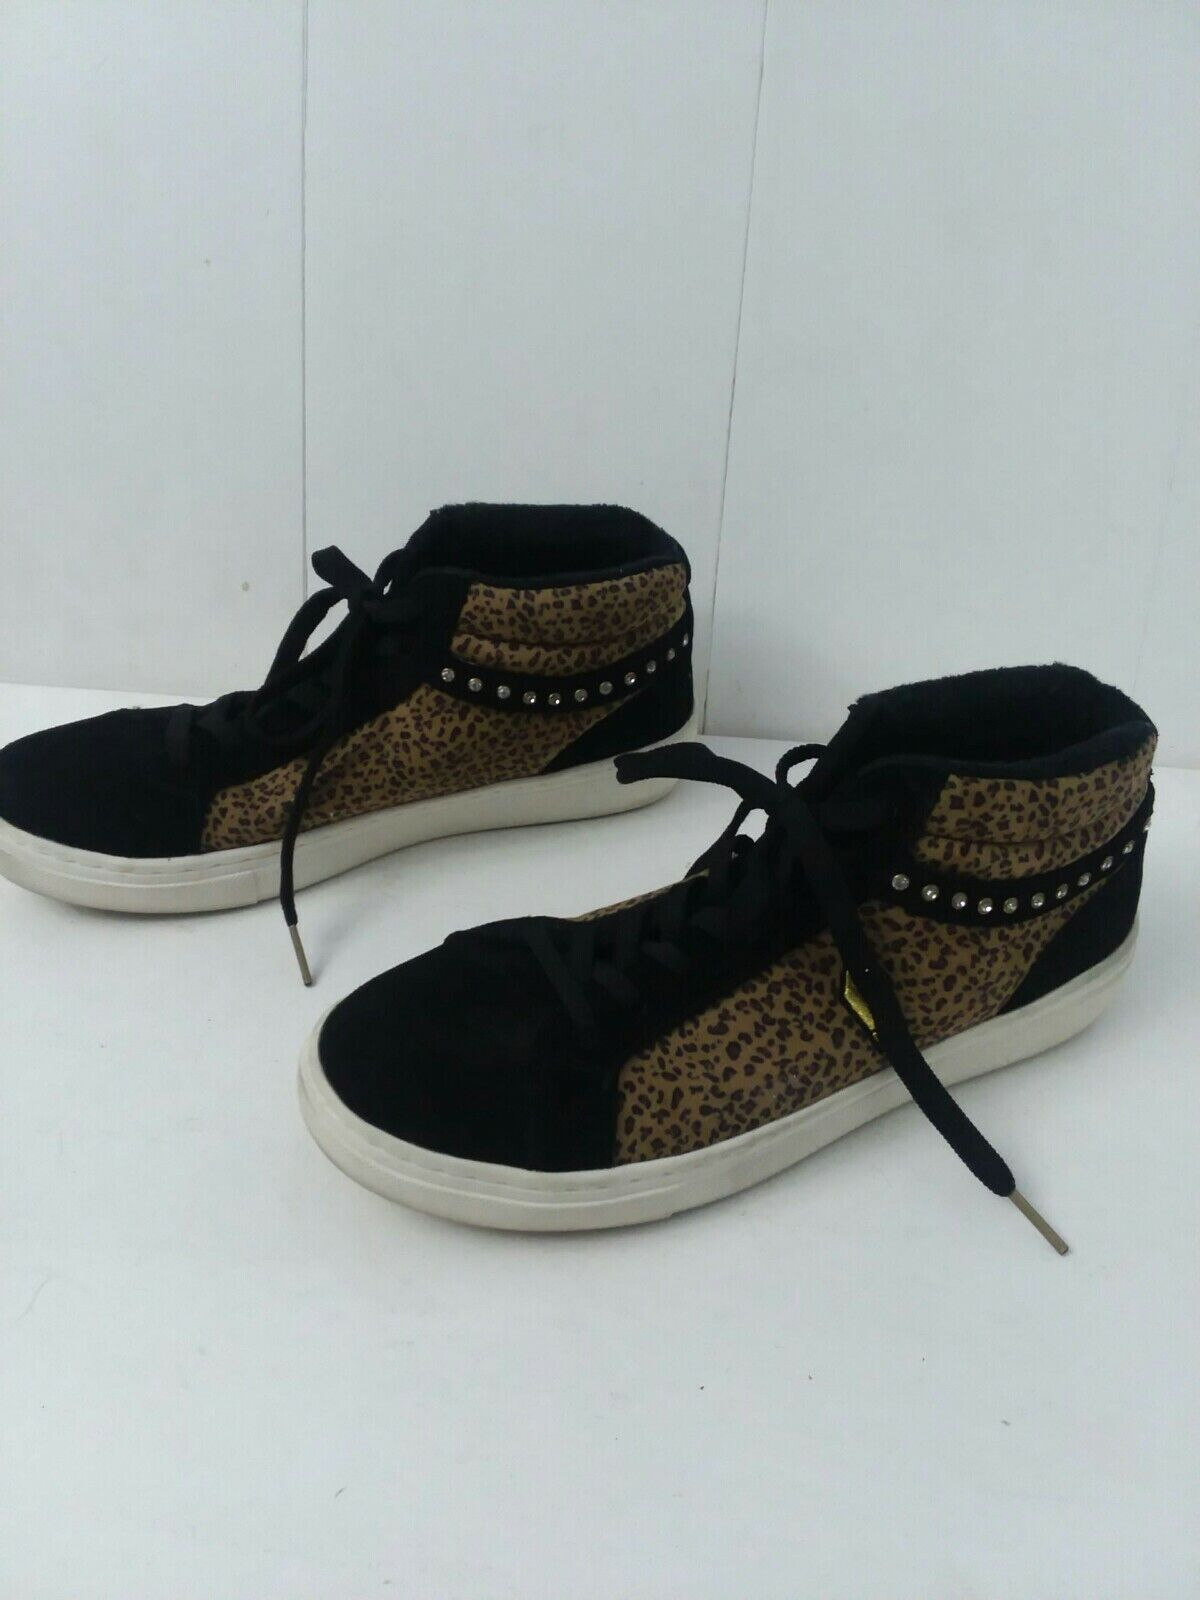 Women's Size 8 Leopard Print And Black Embellished Low top Skechers Sneakers